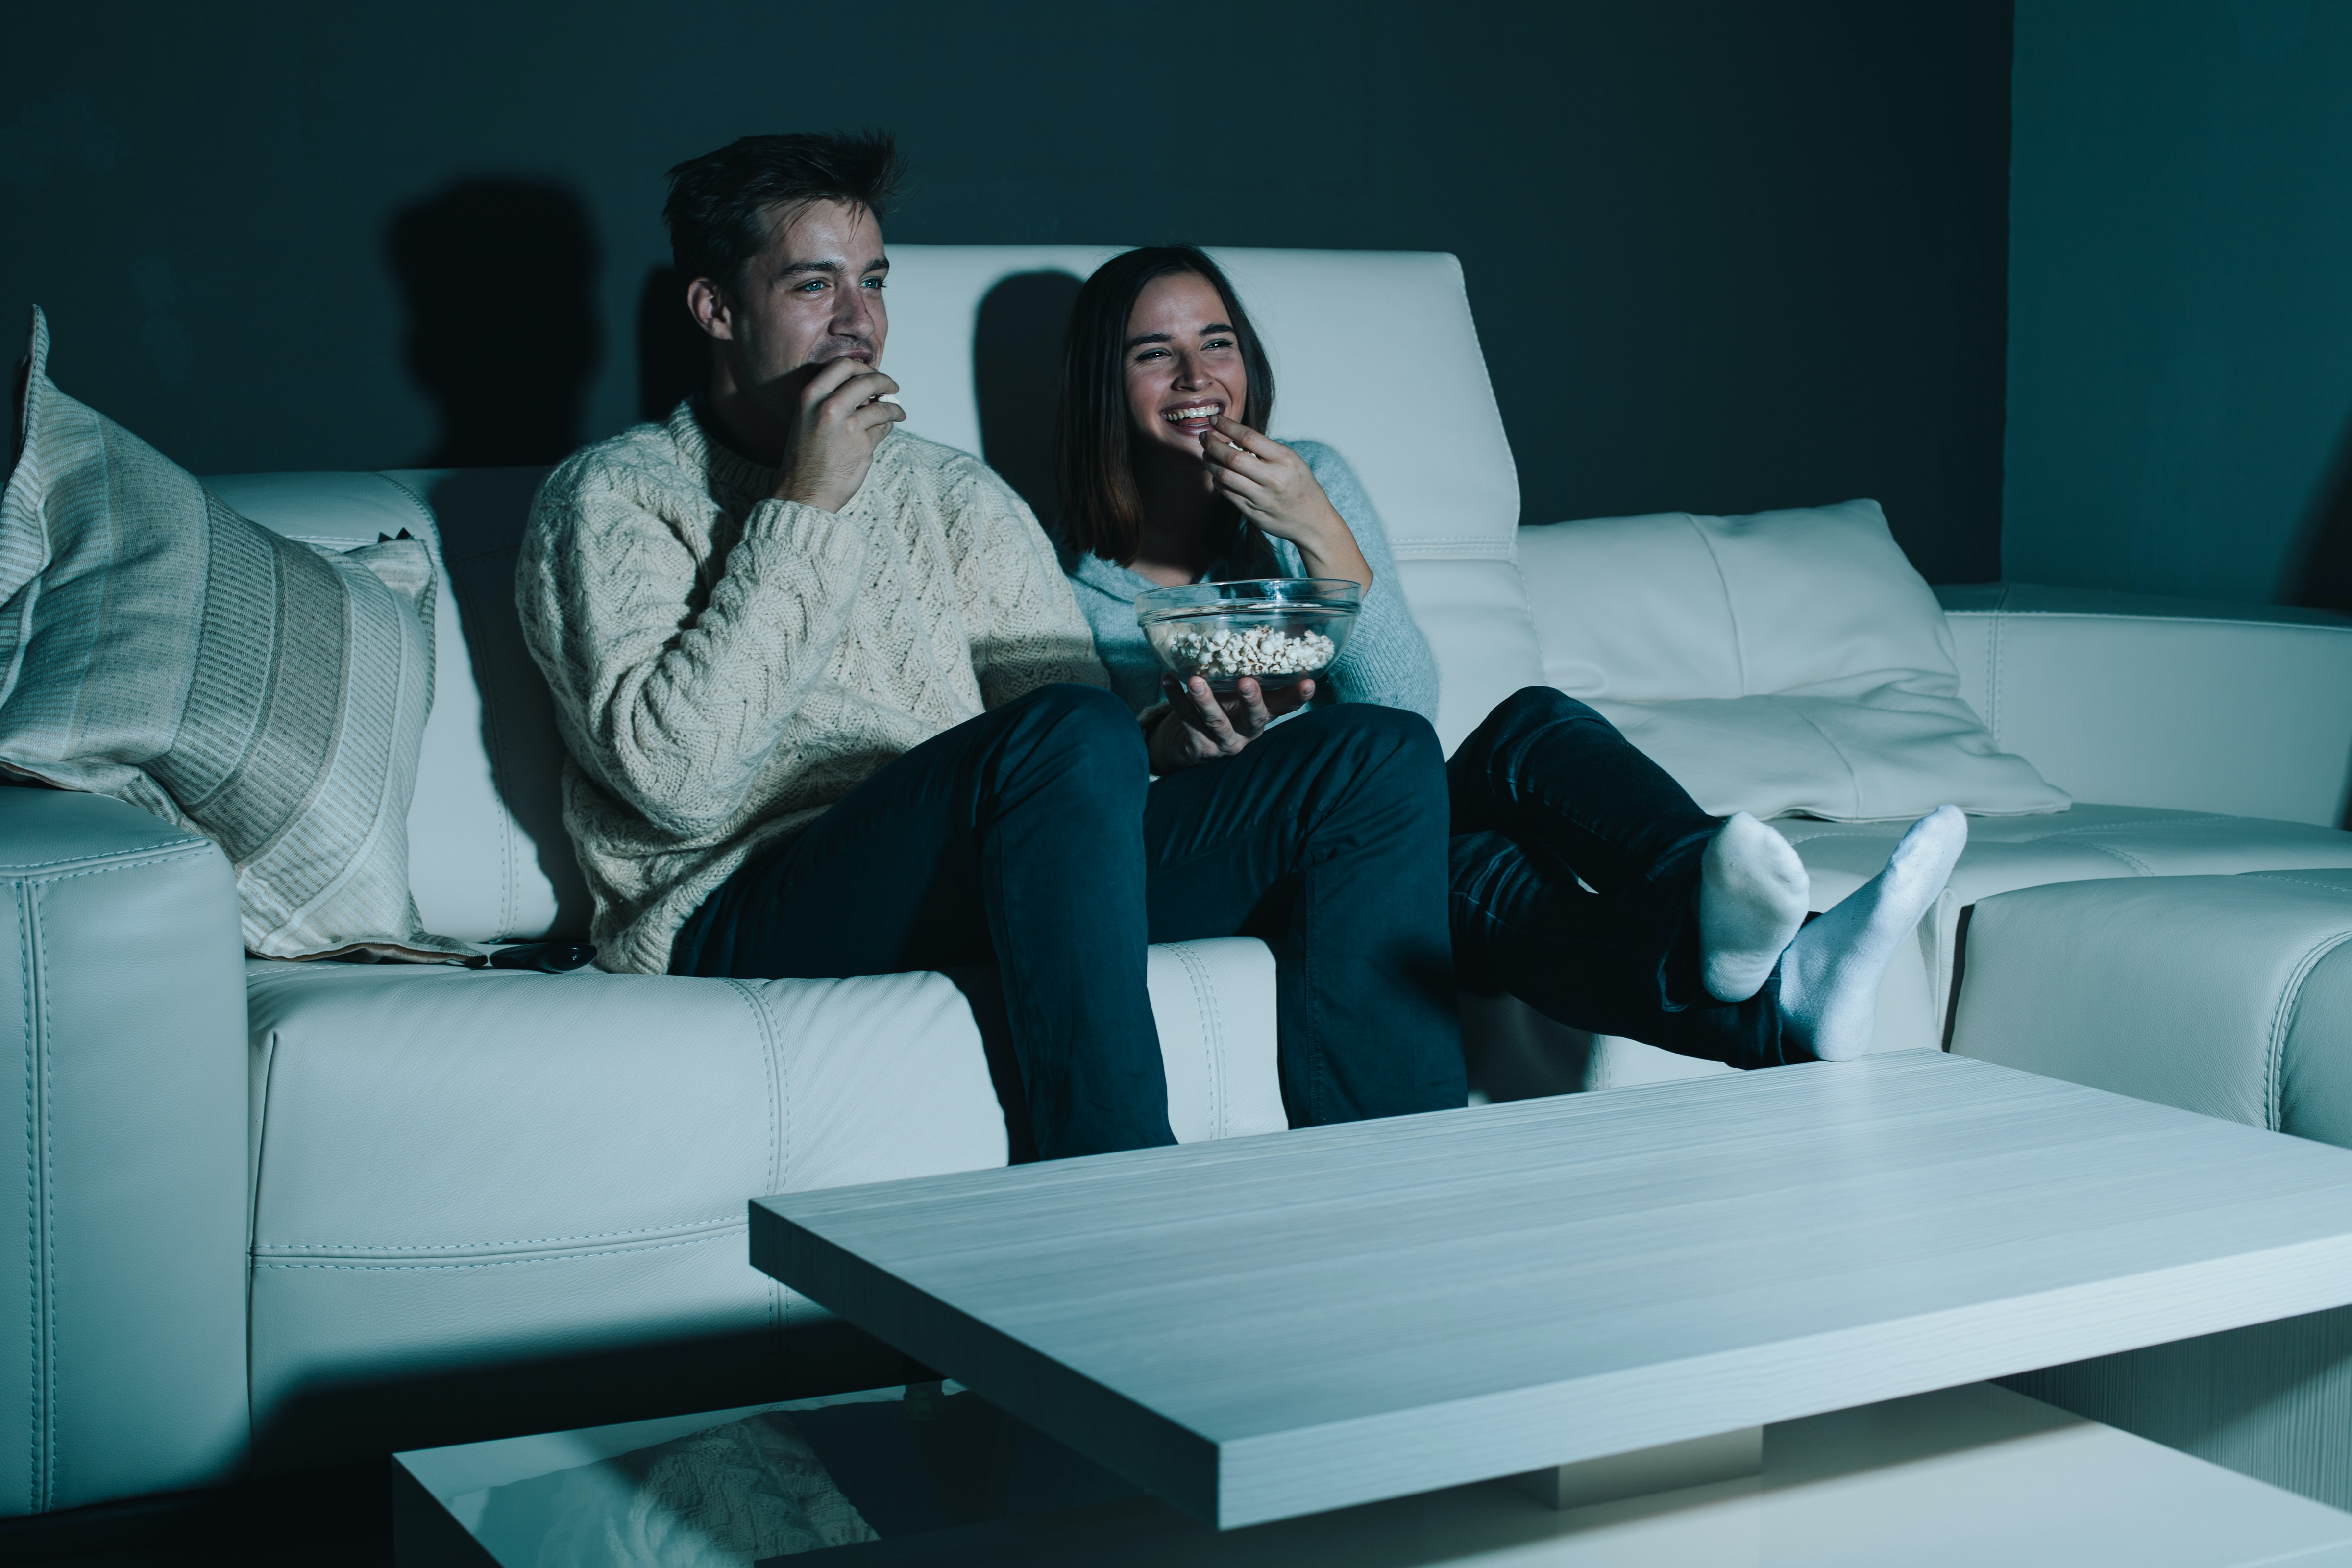 3 ways that big data reveals what you really like to watch, read and listen to